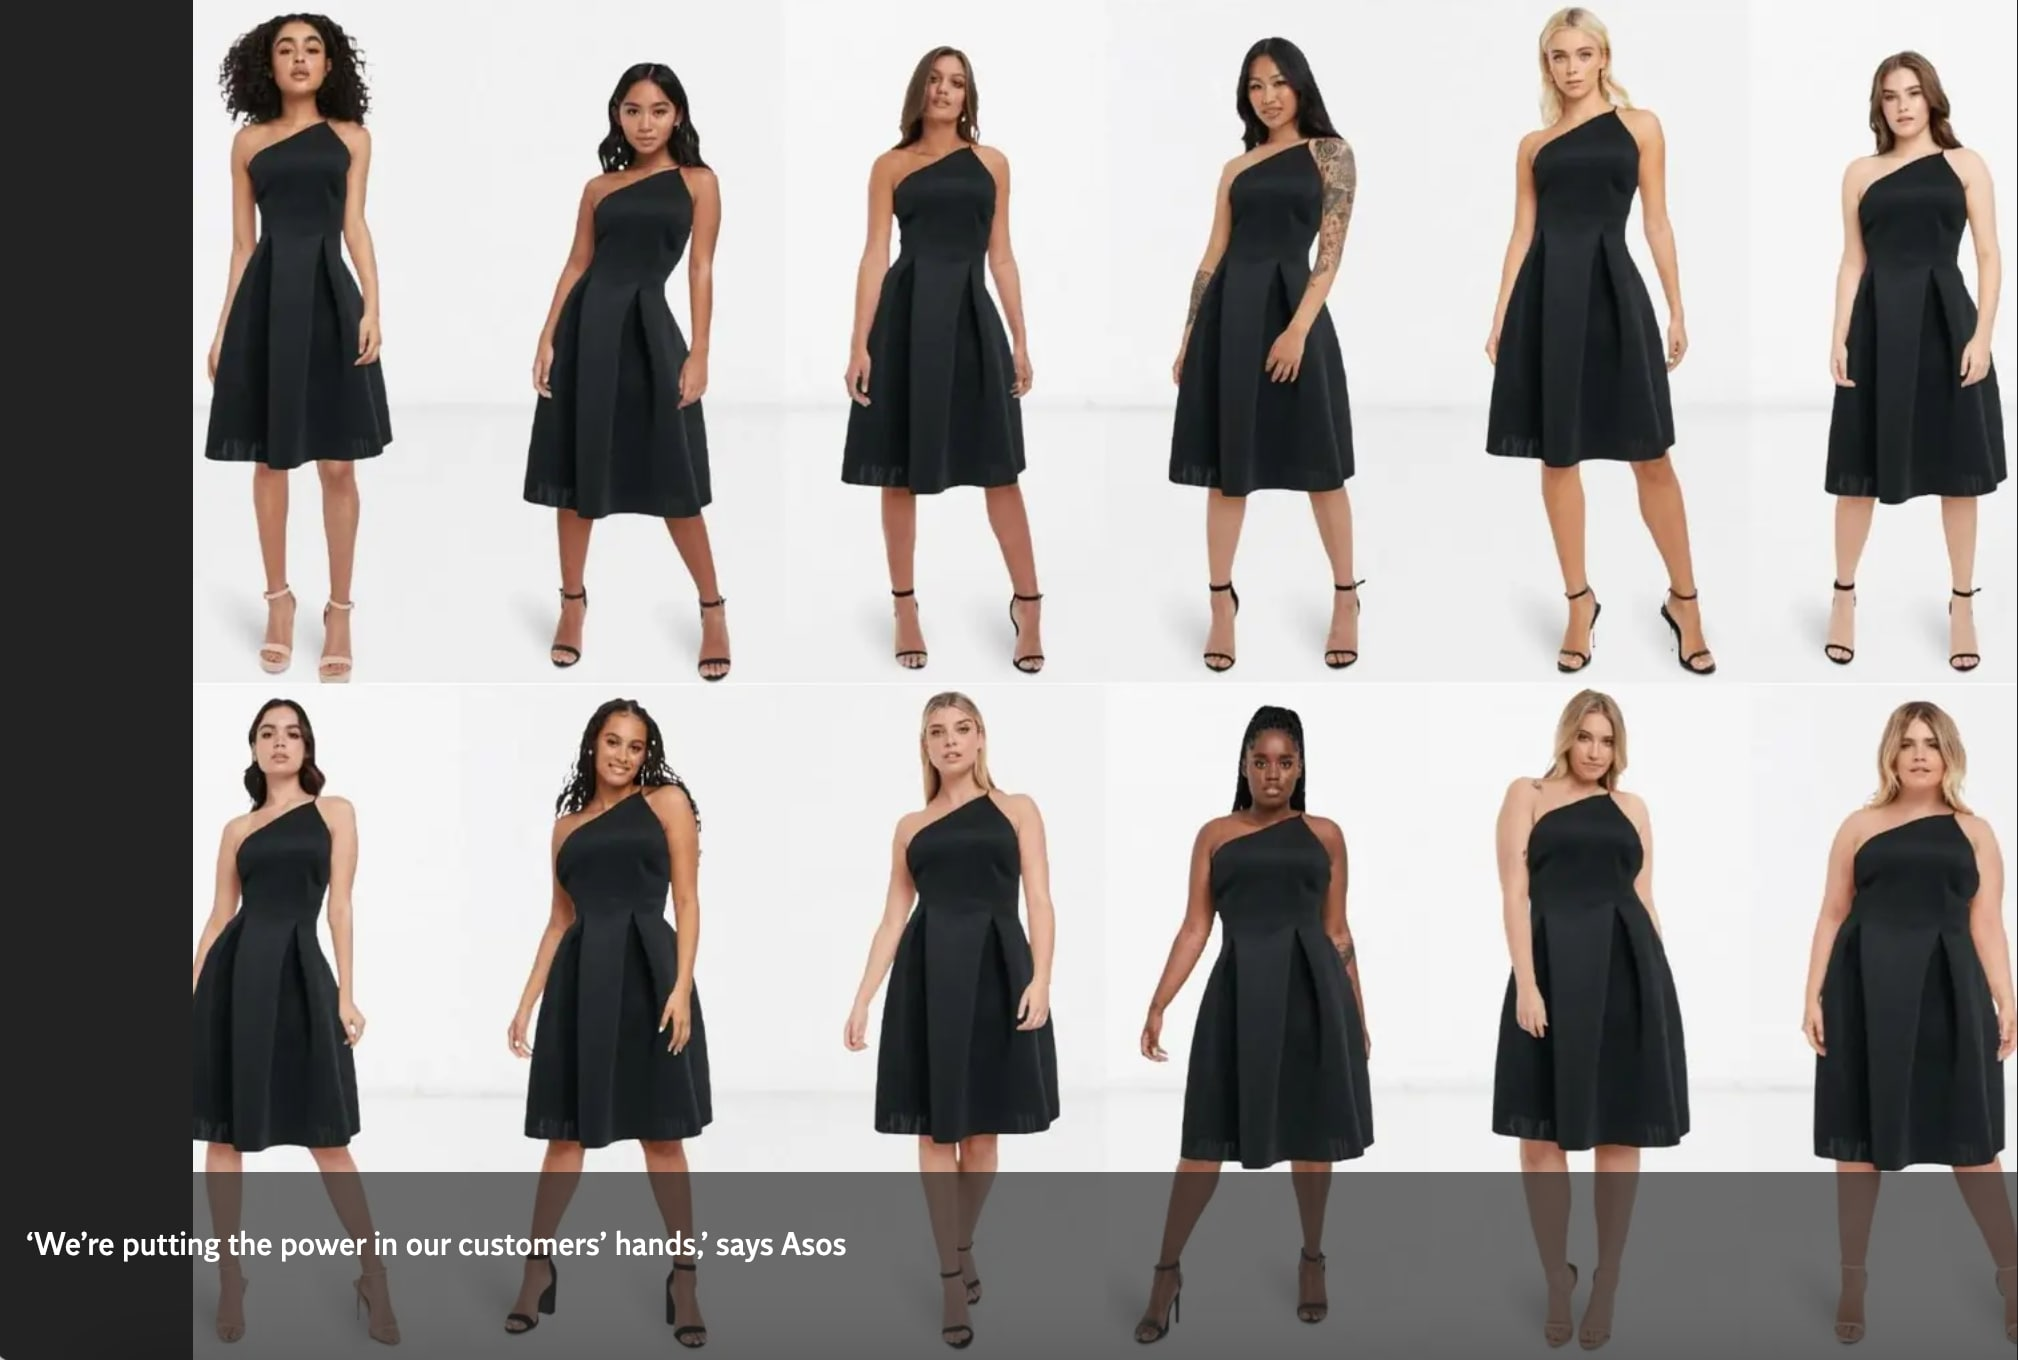 12 women all wearing the same black dress, showing how it looks on different body types